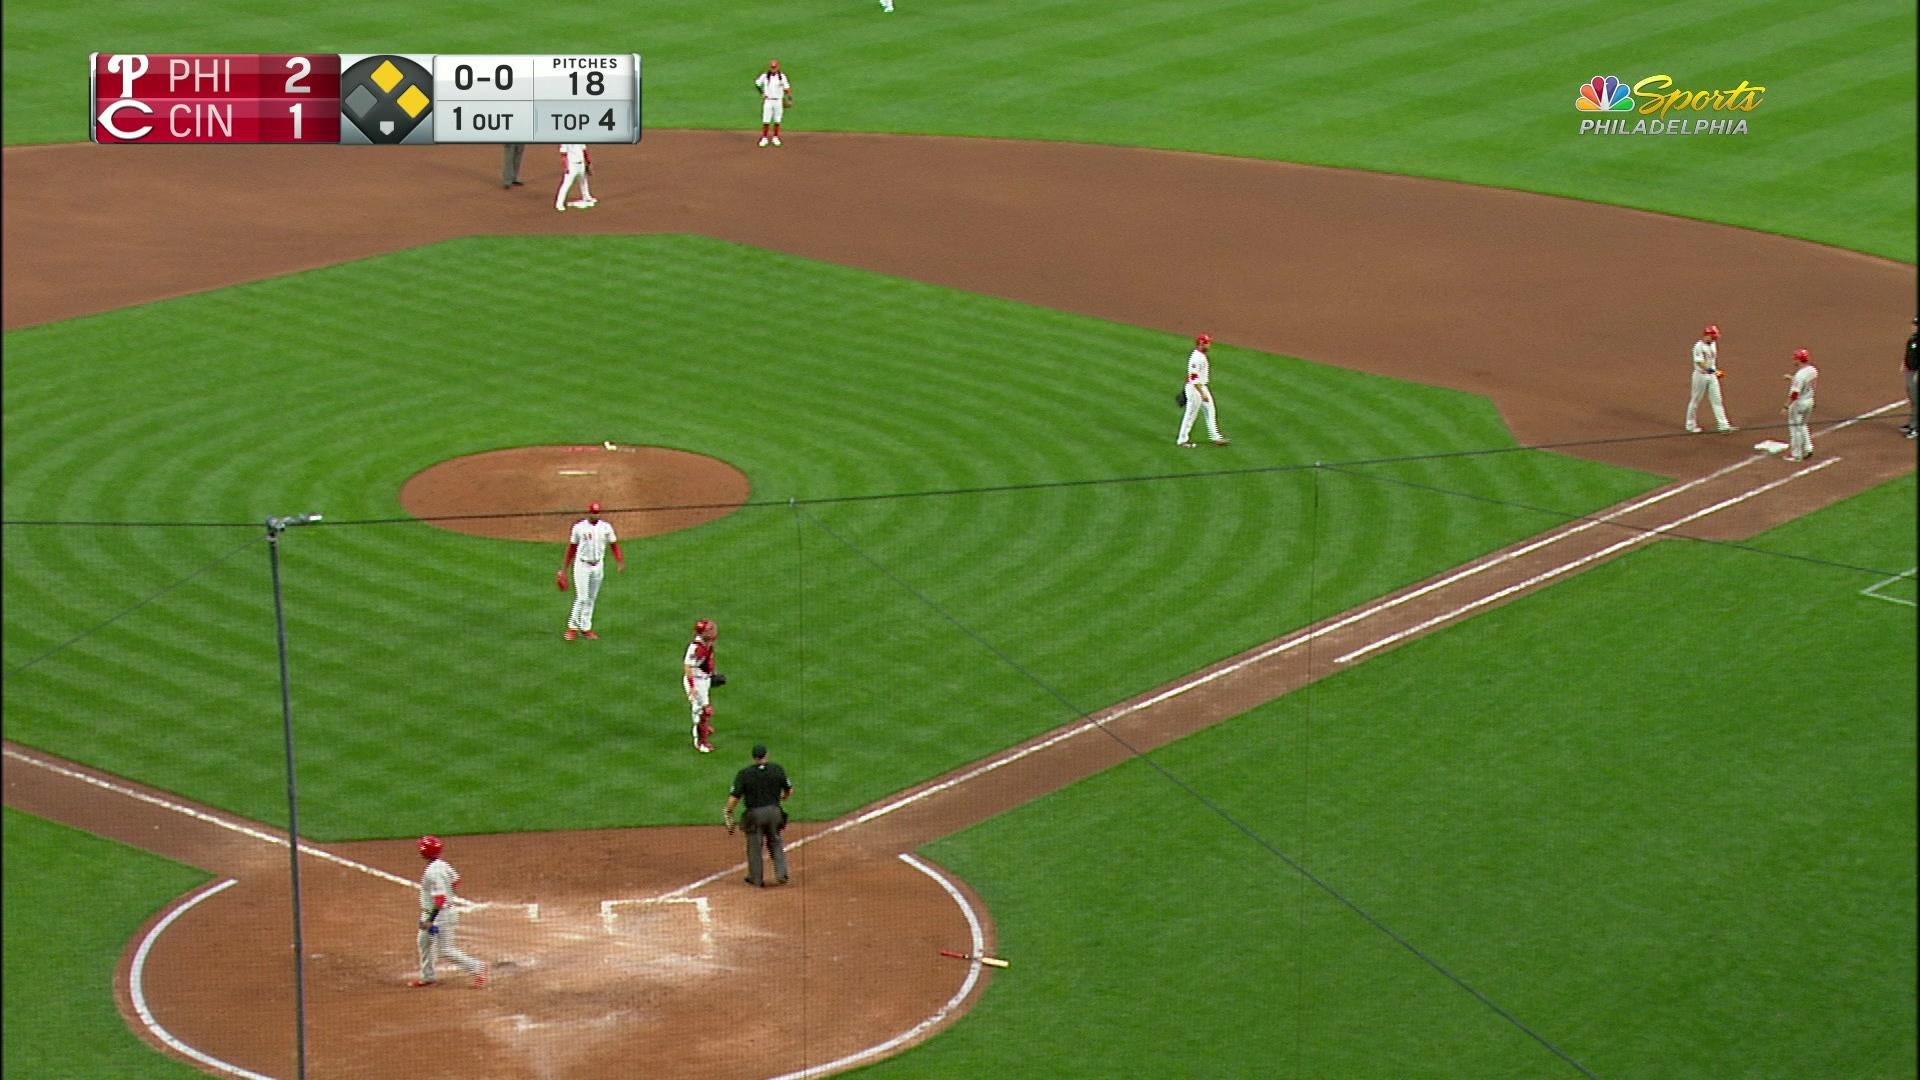 Hail César! Hernández brings up Segura to give the Phils the lead